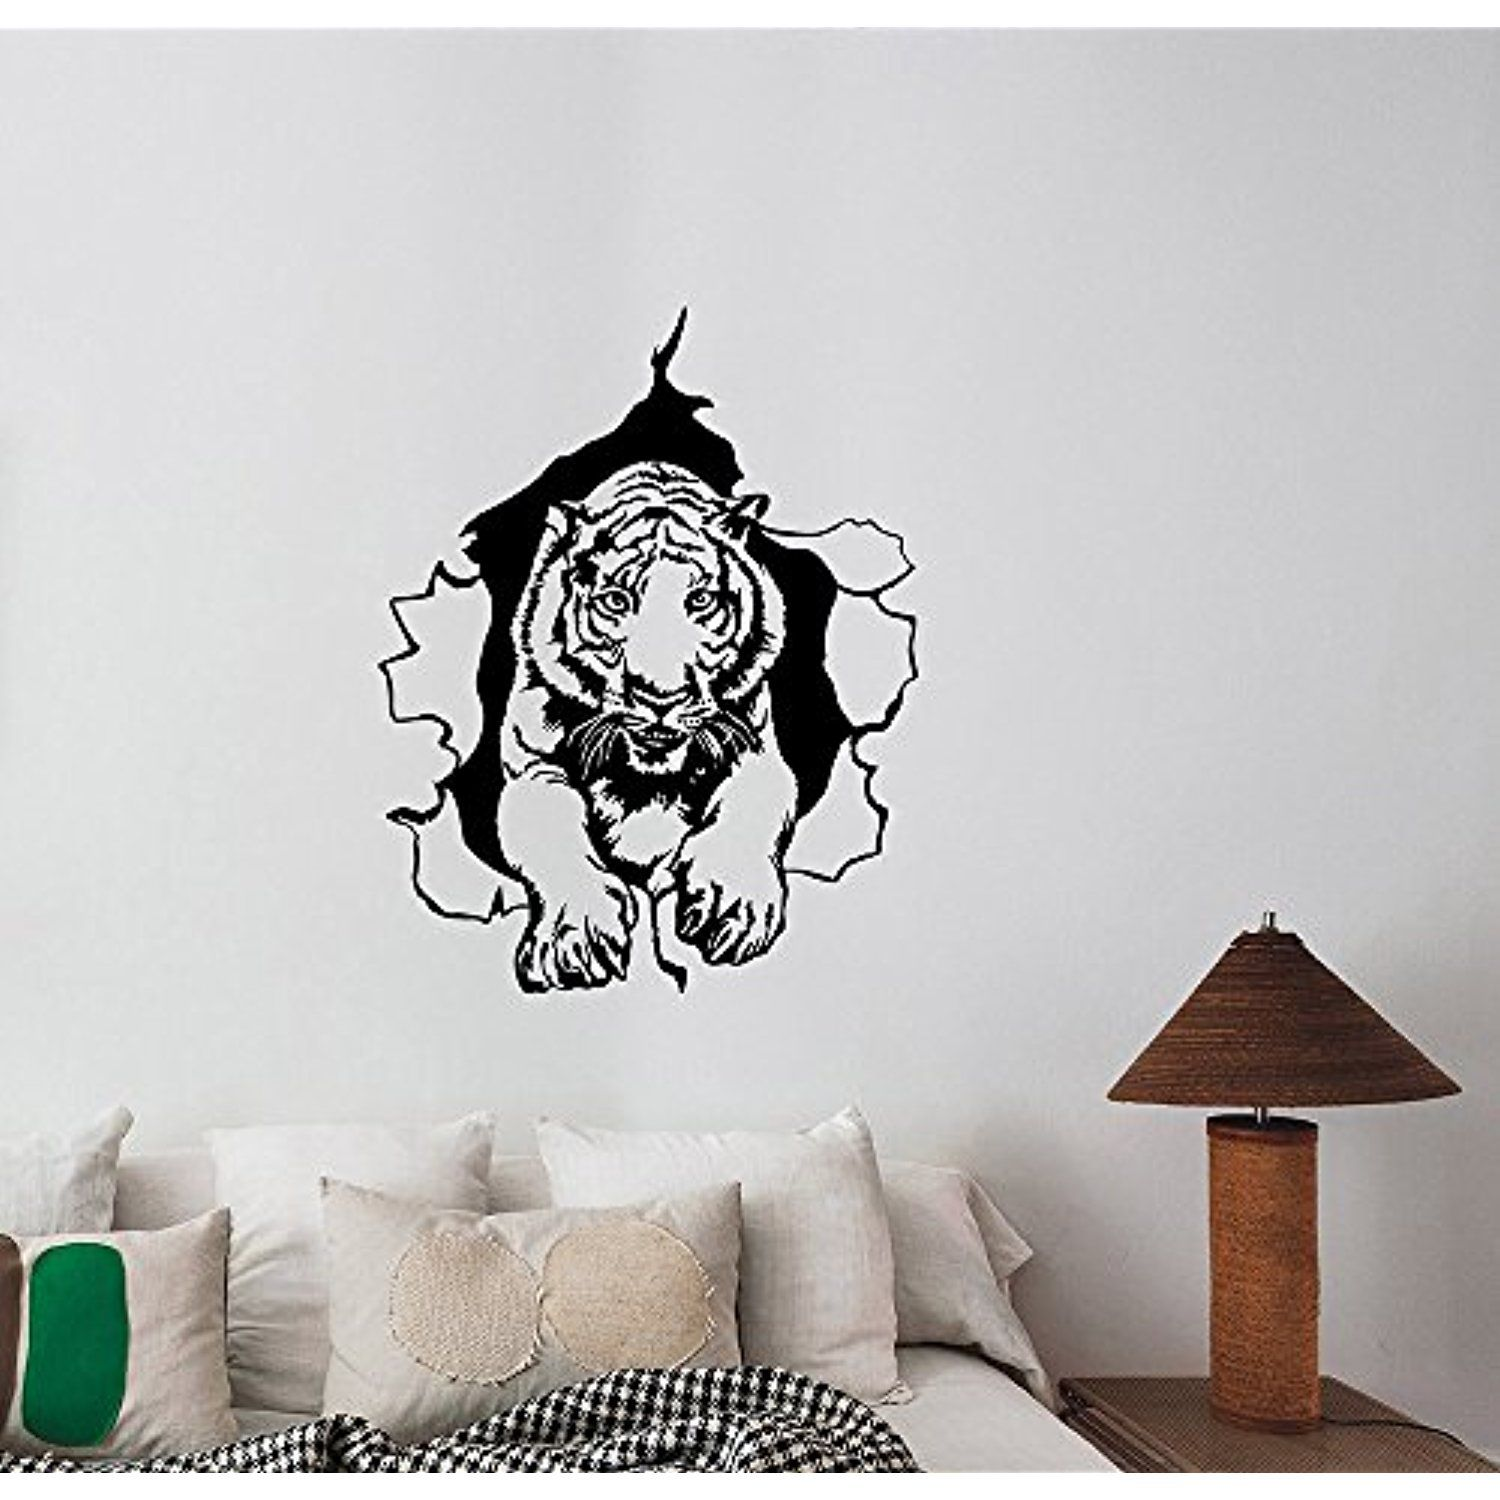 Tiger Ripped Wall Decal Vinyl Sticker Safari African Animal Art ...